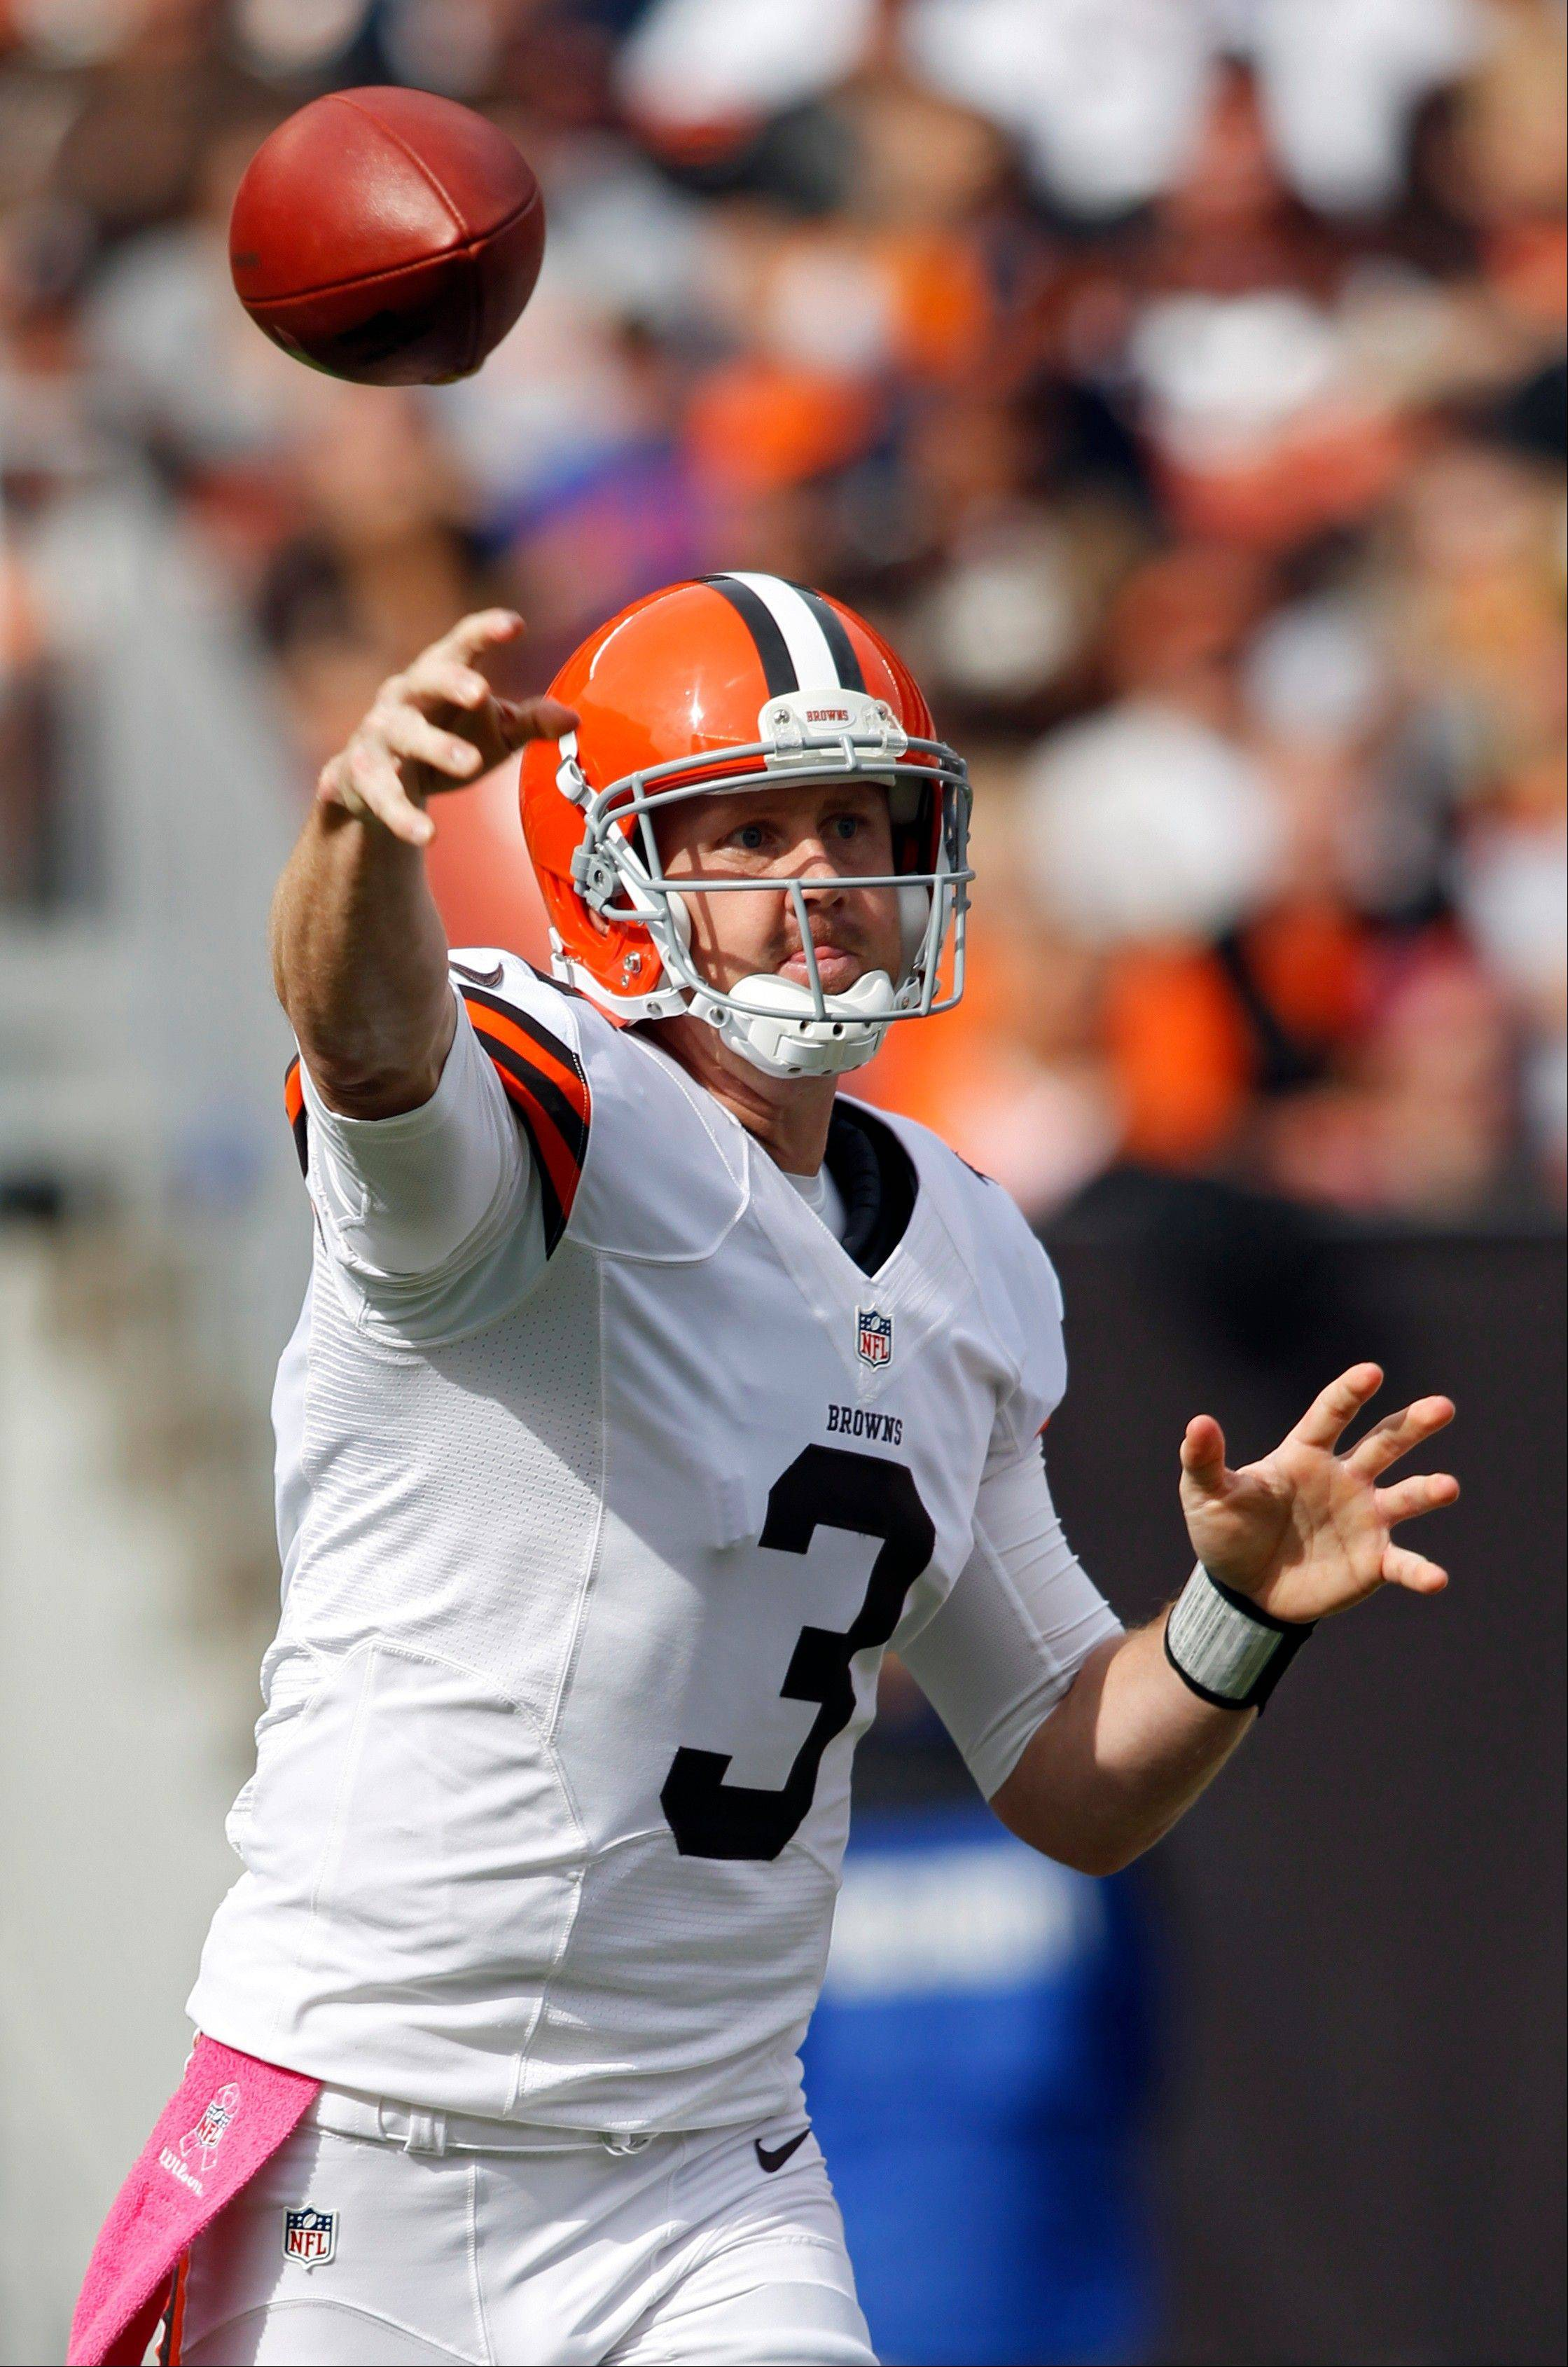 Cleveland Browns quarterback Brandon Weeden passes against the Cincinnati Bengals in the first quarter of an NFL football game on Sunday in Cleveland.